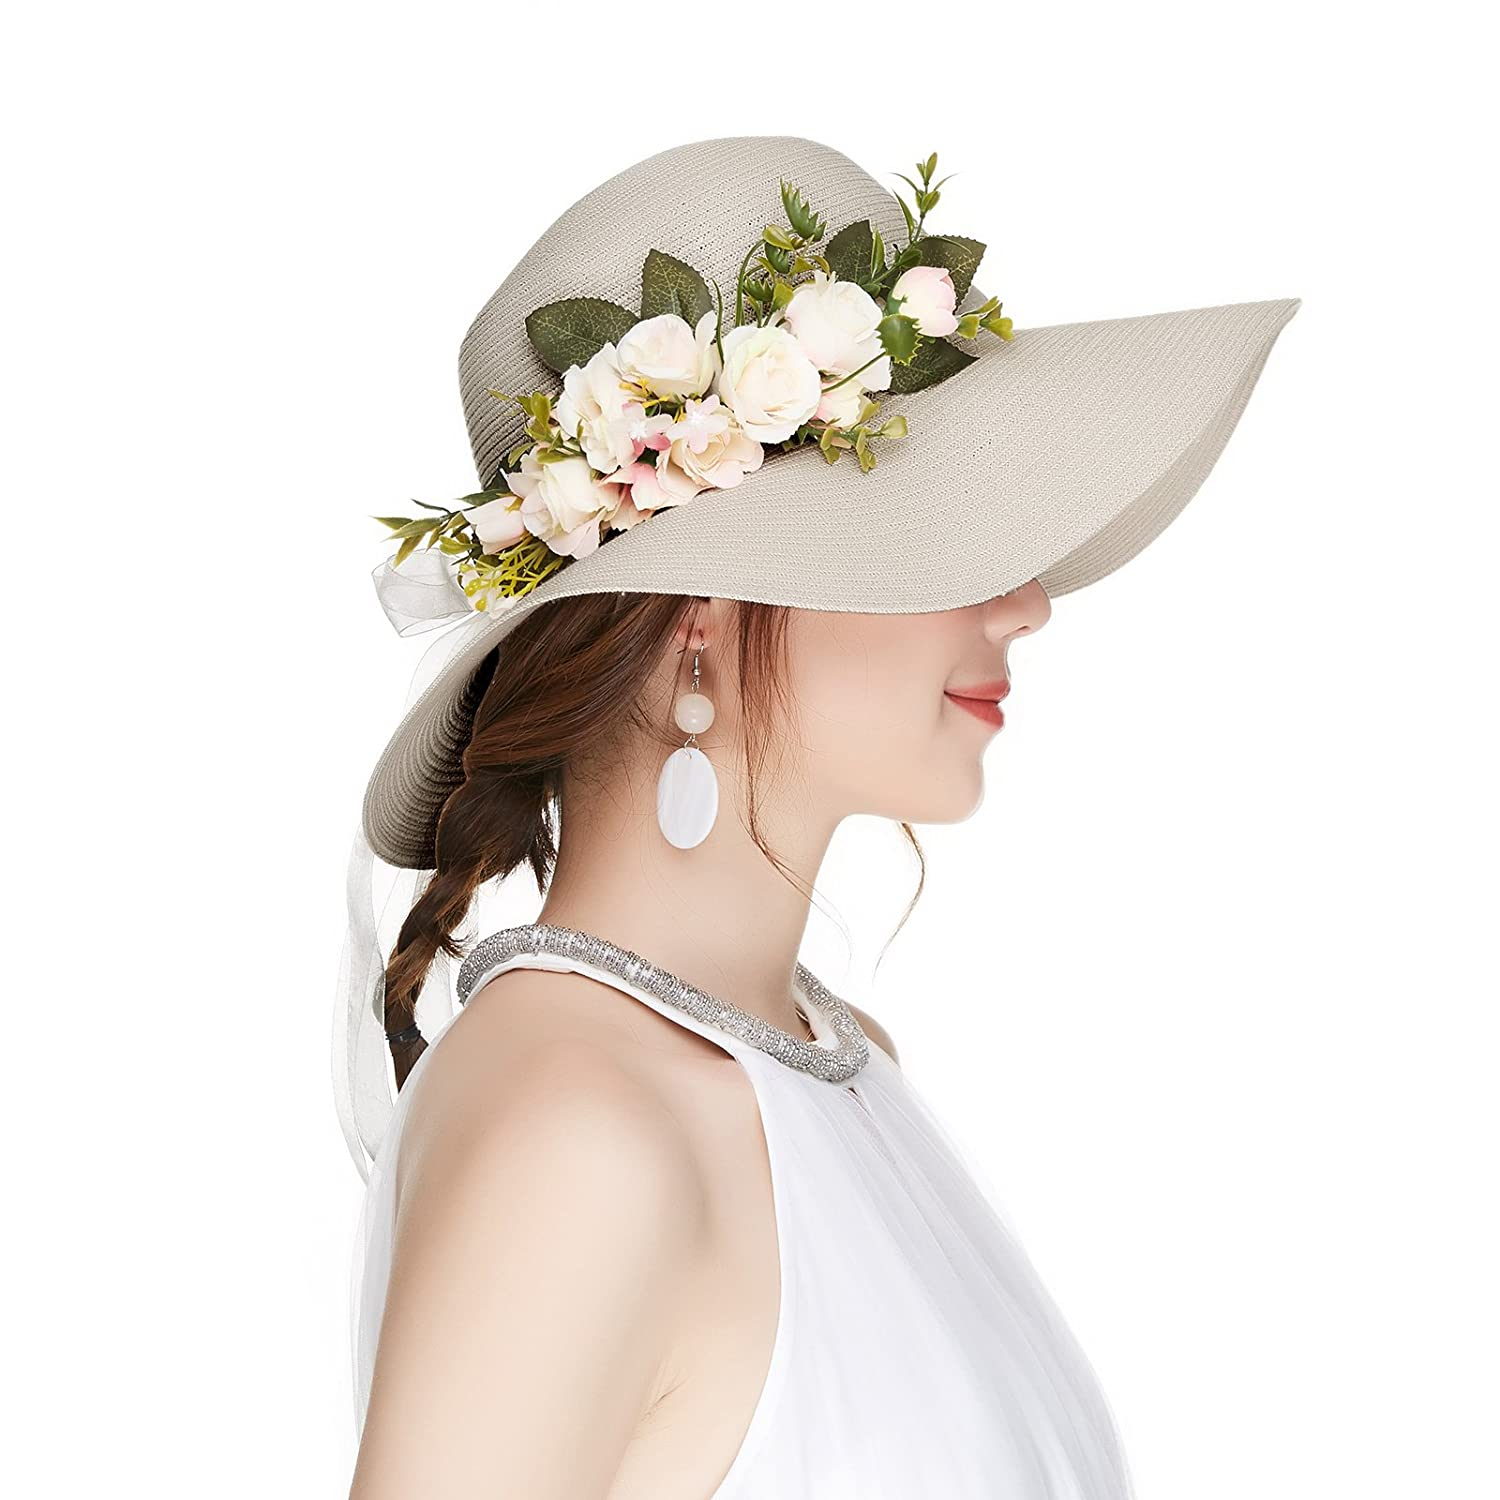 46a98e3414a53 Hat size   Best fit for 21.6-23.7in( 55-59cm) brim is 4.4in(11cm) ◇  Material   We only use 100% straw paper